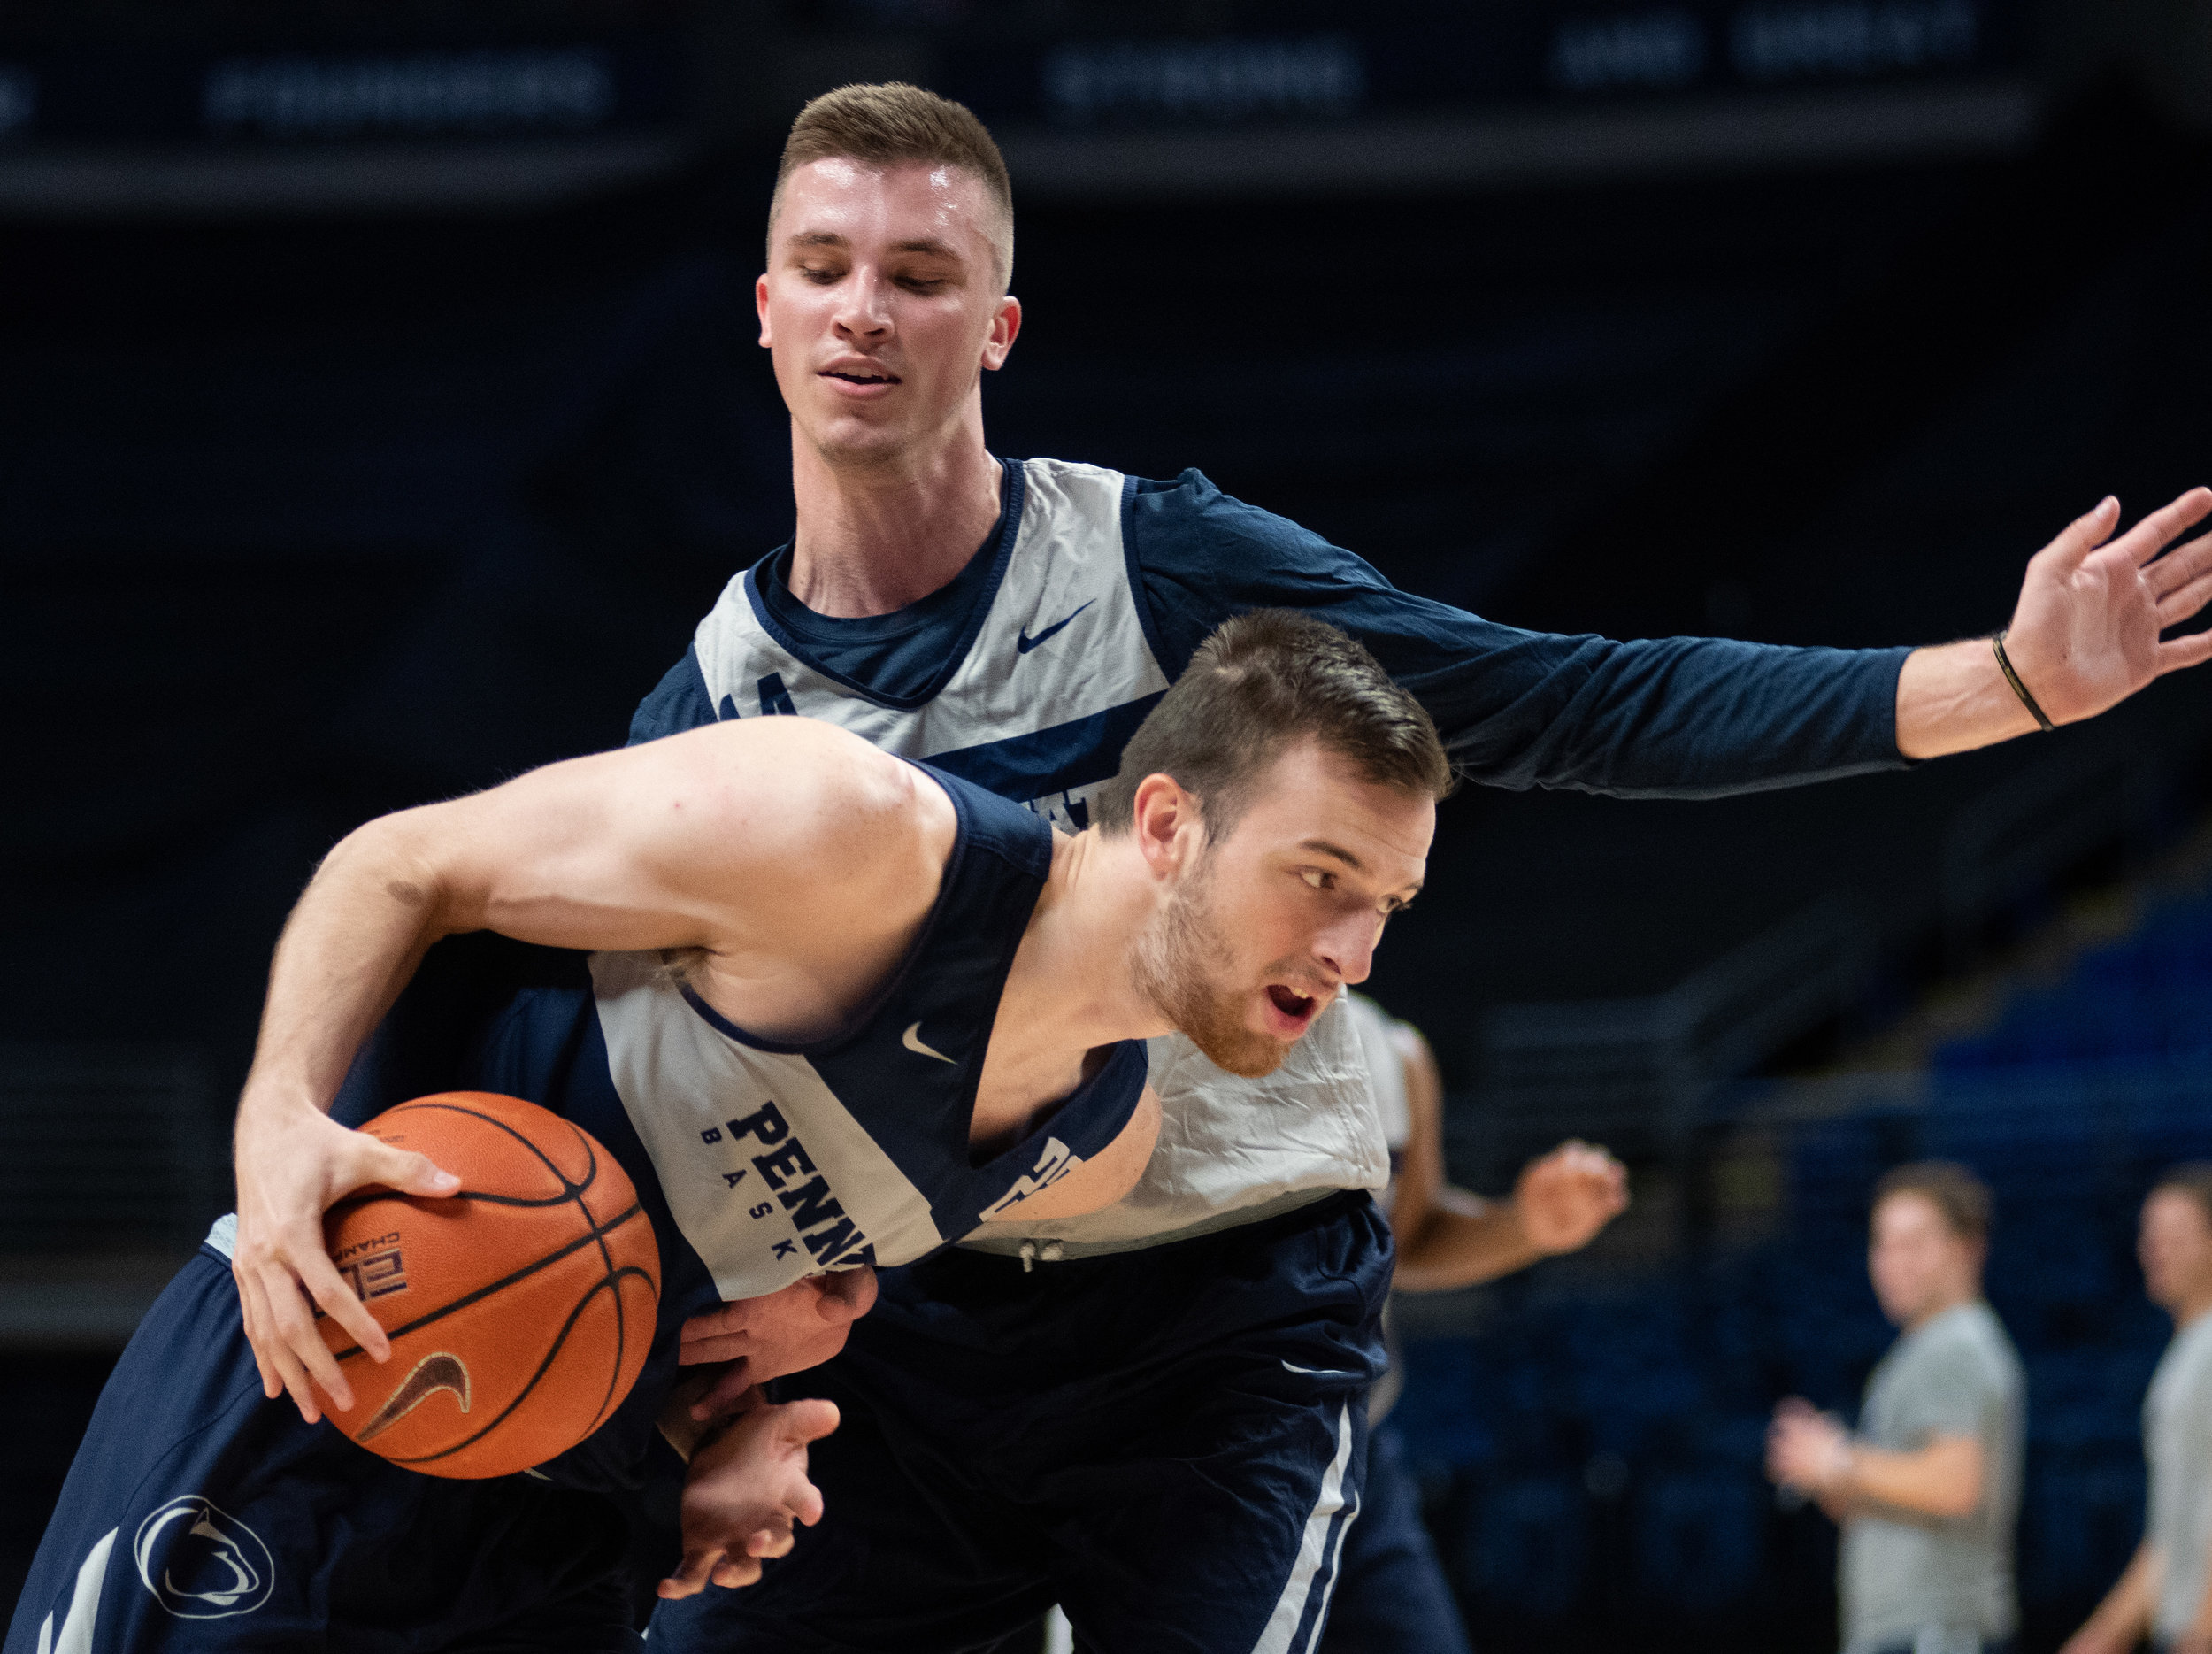 Forward Grant Hazle (22) dribbles during Penn State men's basketball media day at the Bryce Jordan Center on Tuesday Oct. 16, 2018. | Photo by: Noah Riffe